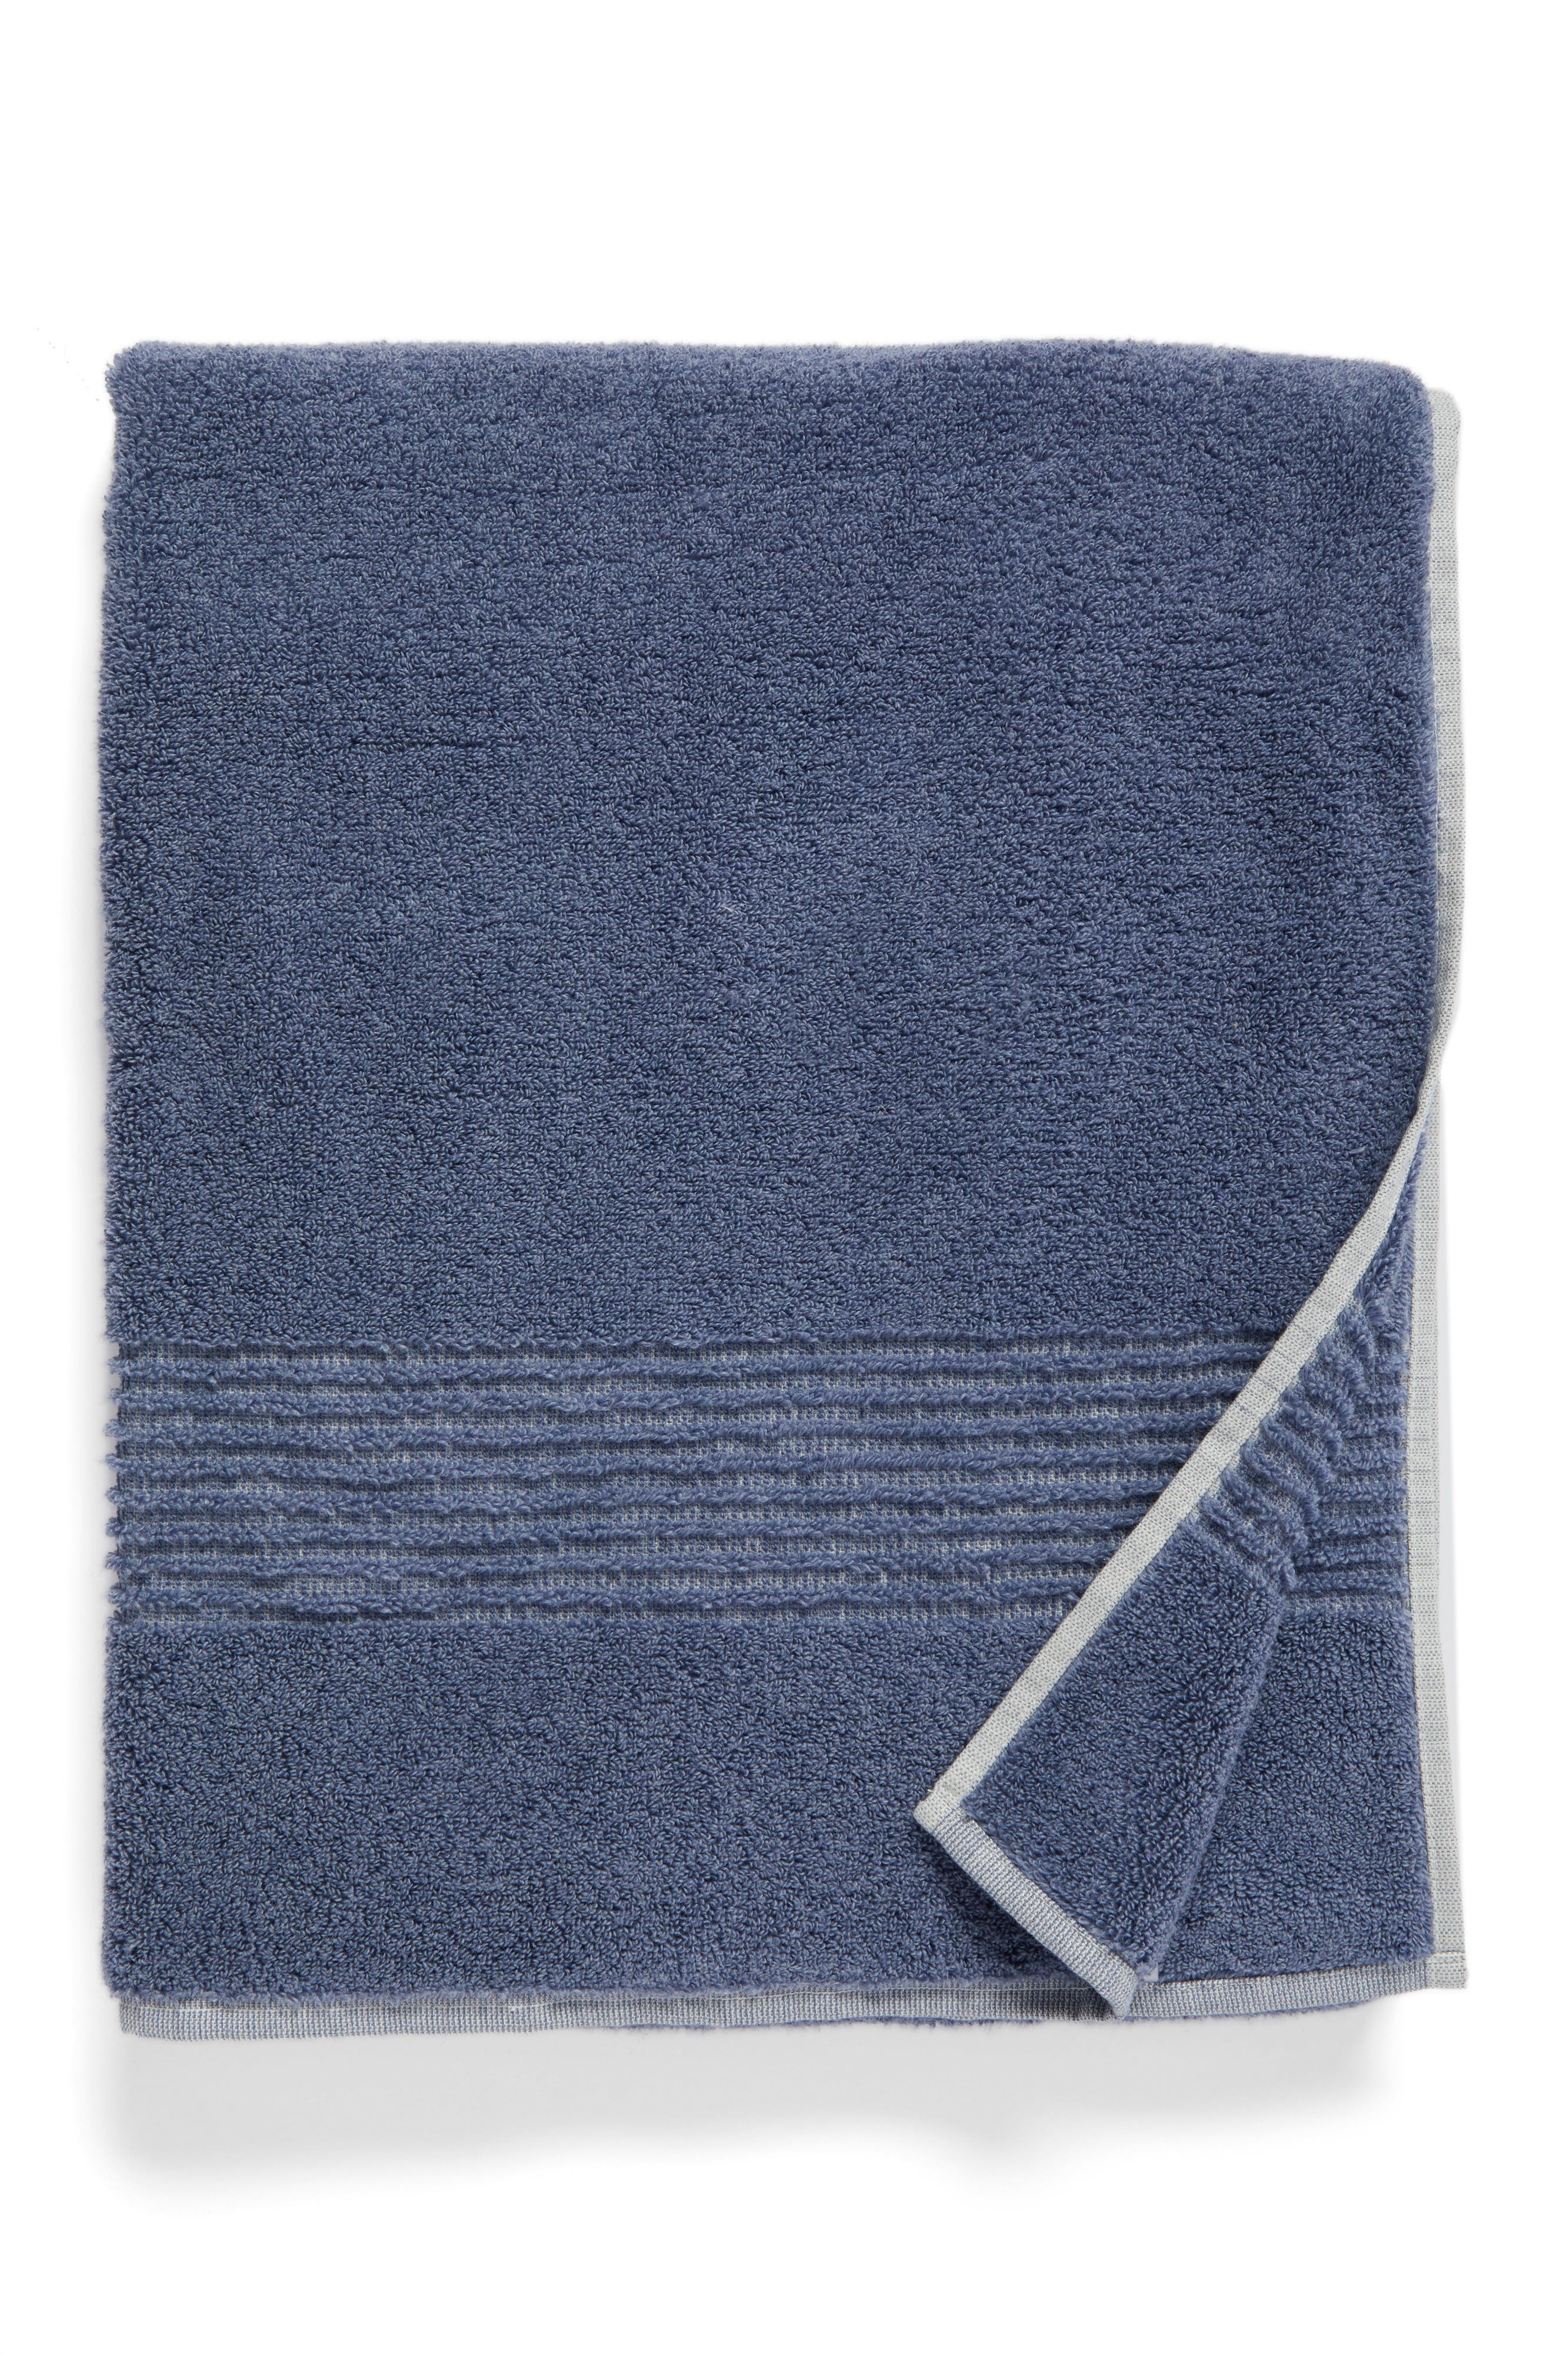 Alternate Image 1 Selected - Nordstrom at Home Organic Hydrocotton Heathered Bath Towel (2 for $49)